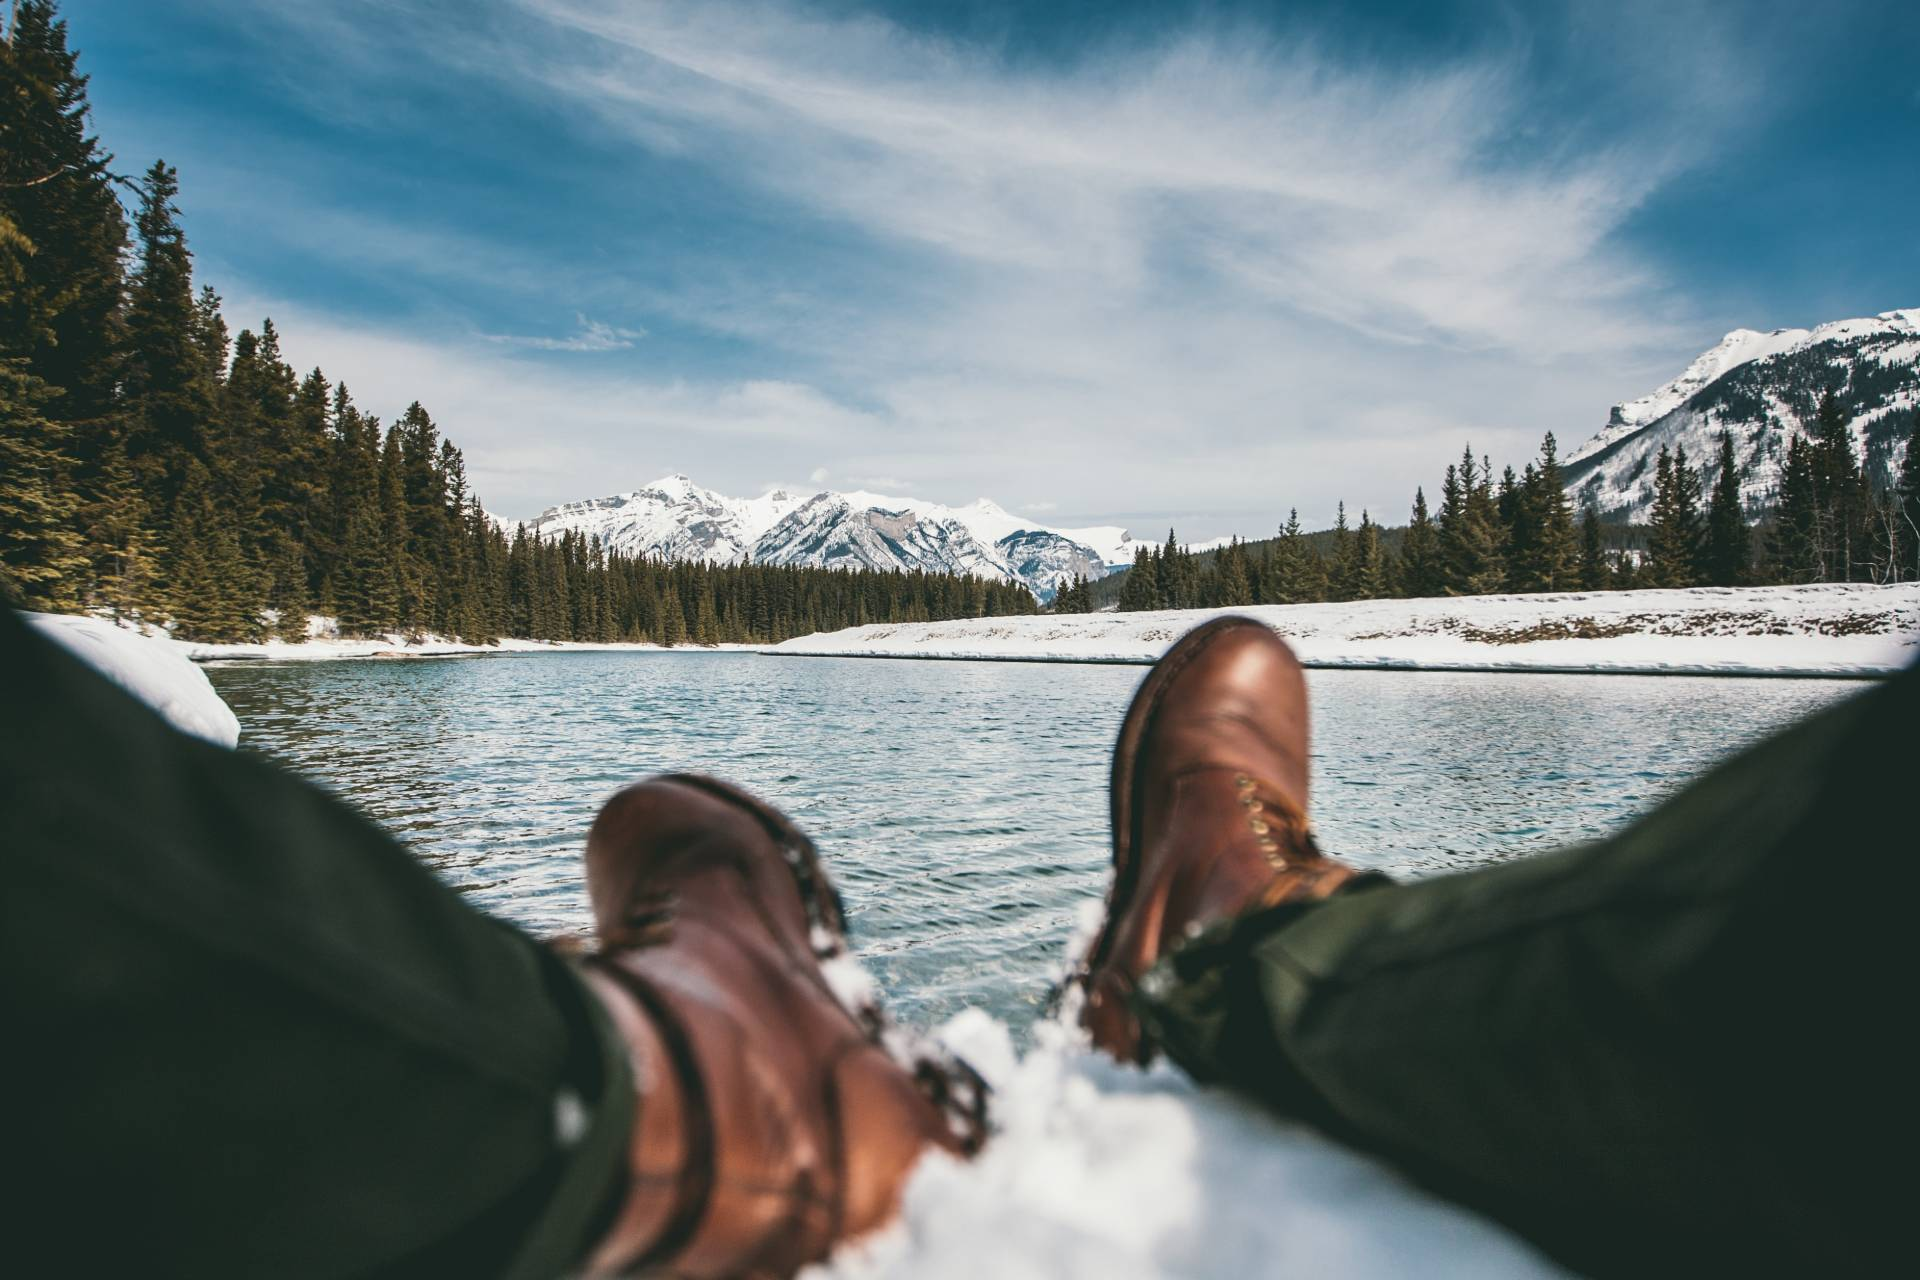 Image of hiker with boot in snow